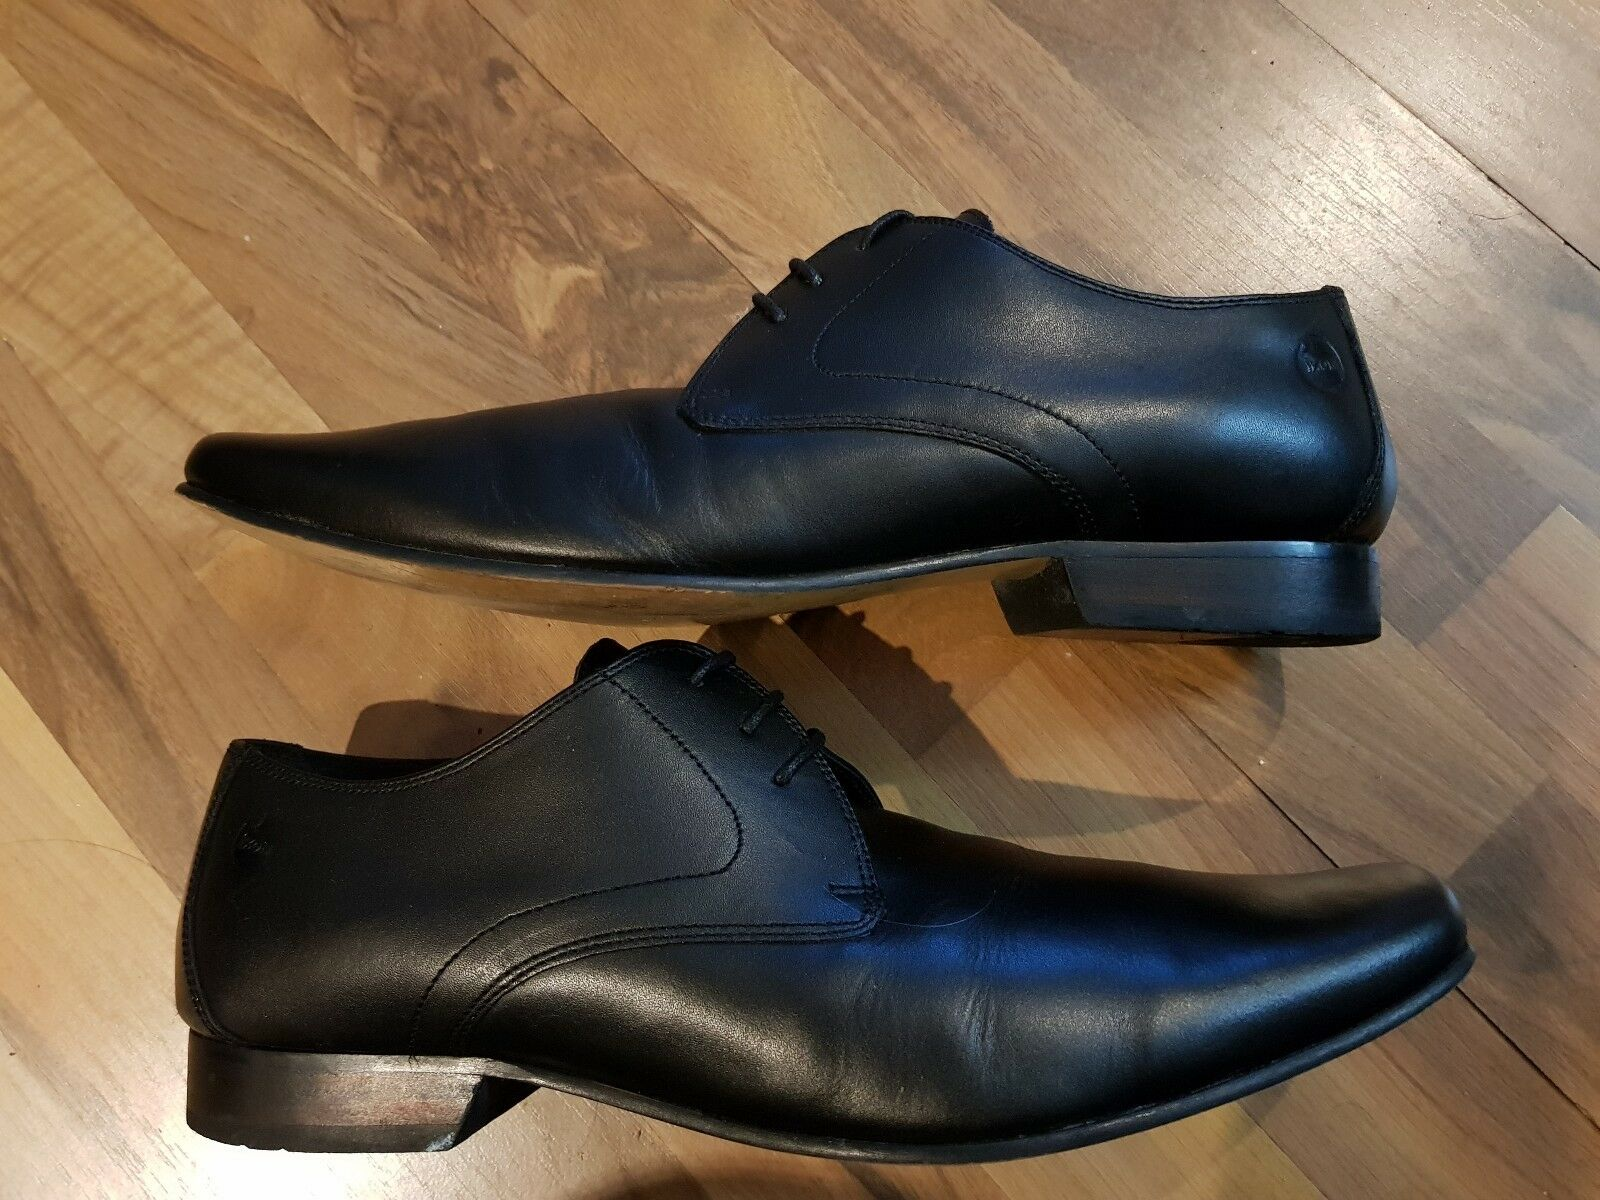 IKON gents full leather shoes size 12uk in black cost